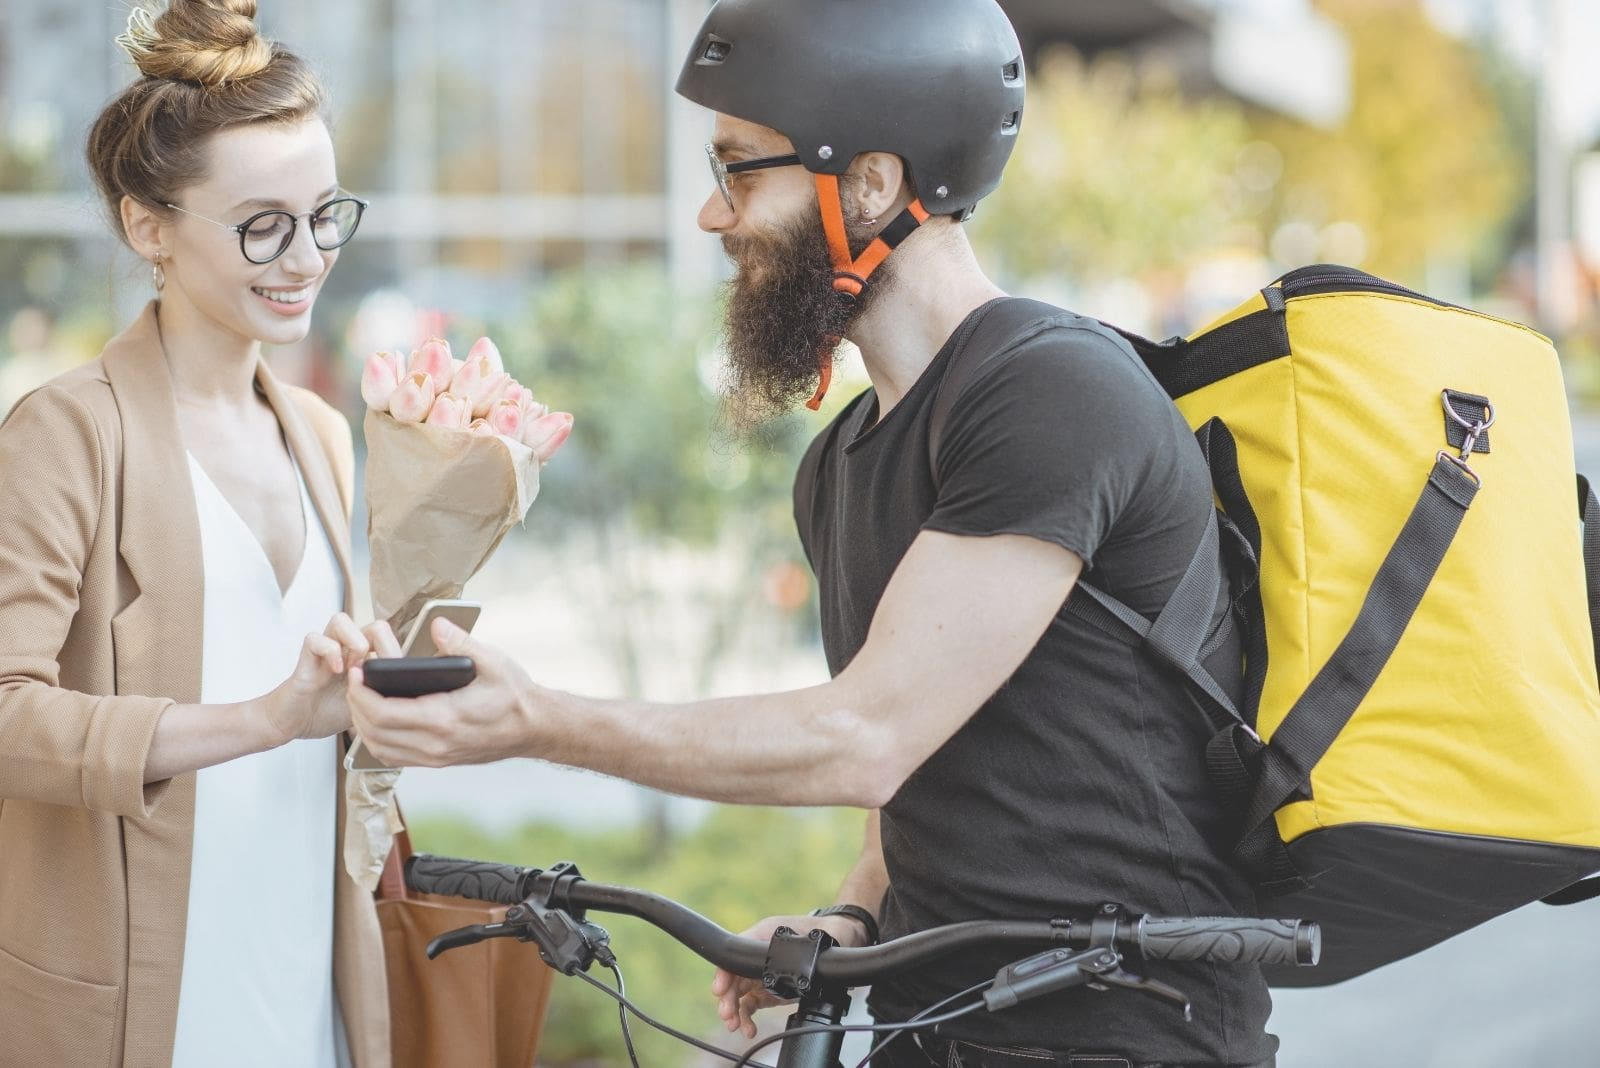 woman receiving flowers from the delivery guy in a bike holding a receipt gadget